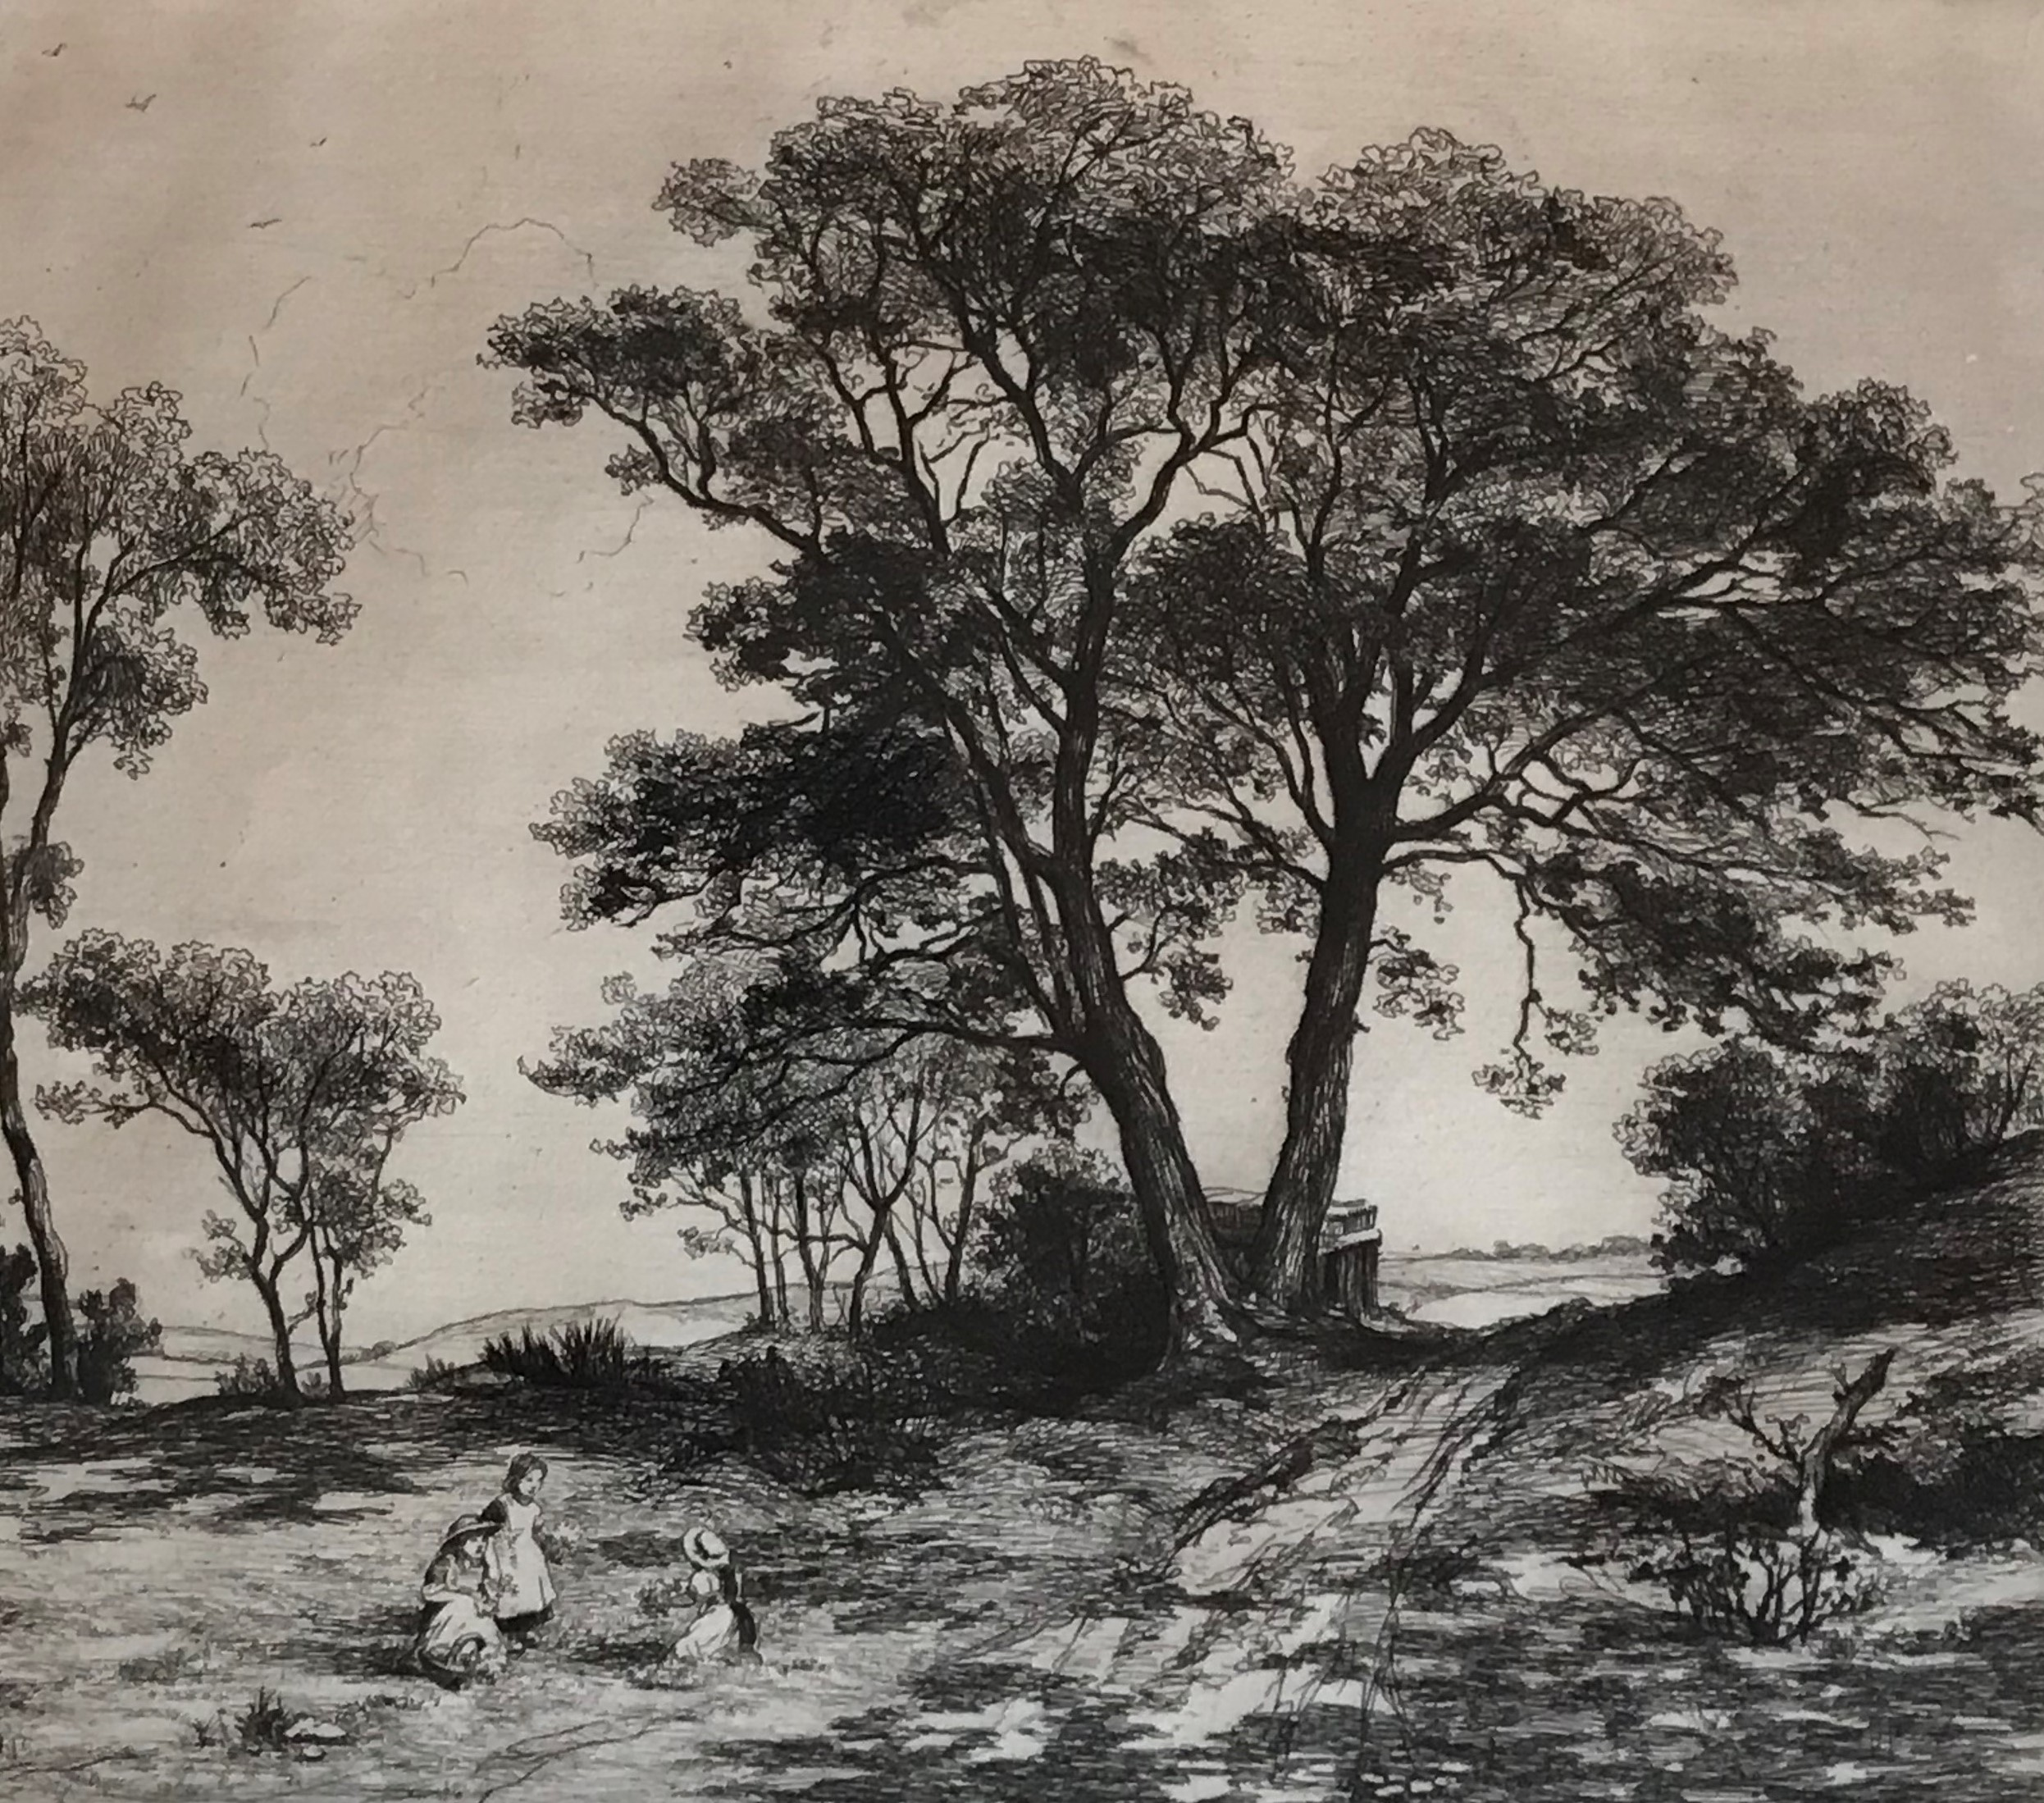 Andrew Allan (1863-1940) pencil signed etching The Picnic - Image 2 of 4